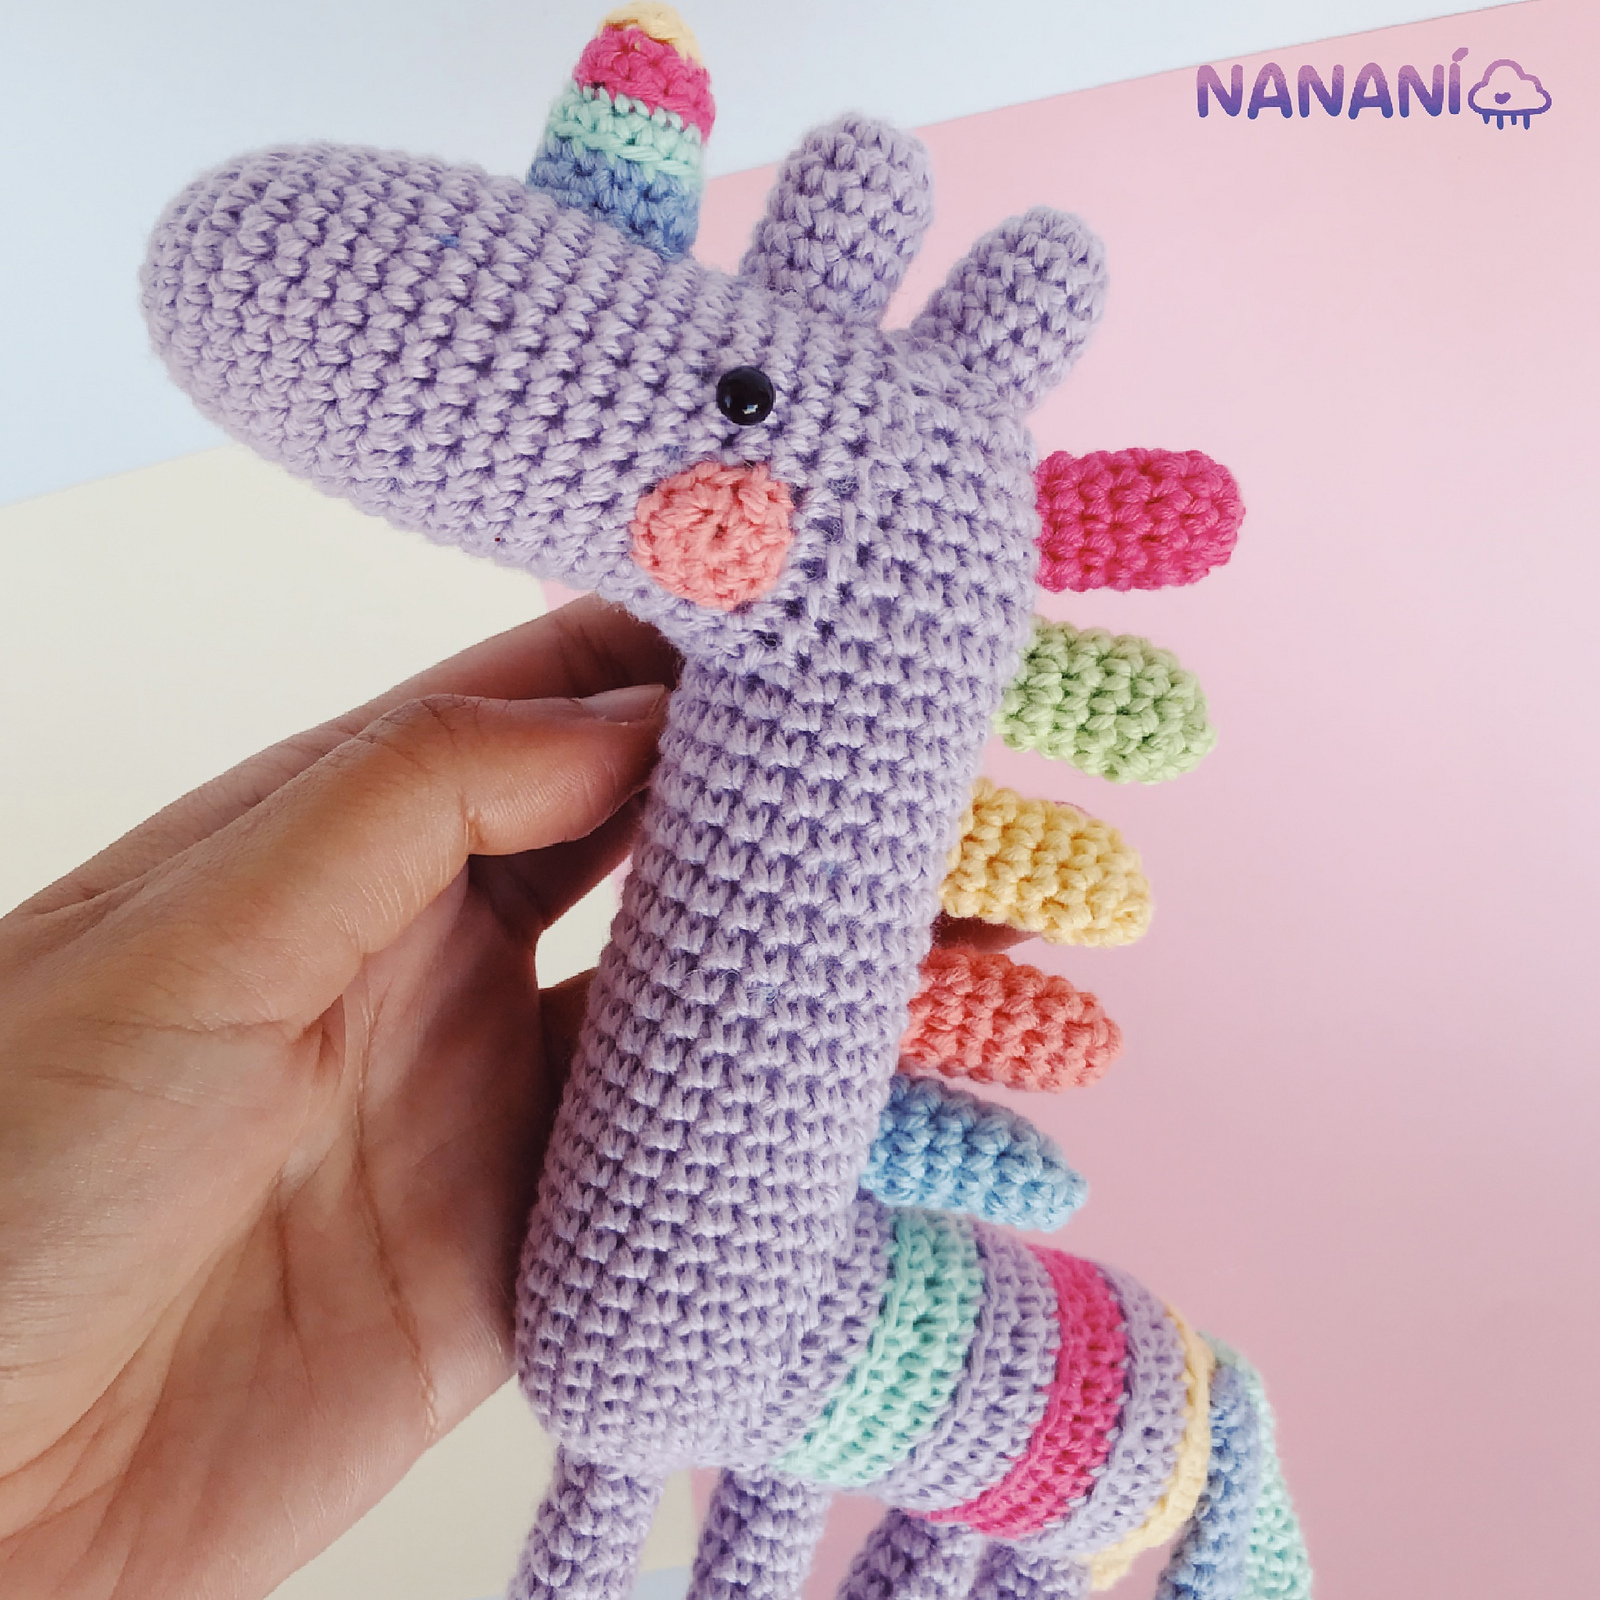 Phat the Rainbow Unicorn Amigurumi Pattern & Kit – Tiny Rabbit ... | 1600x1600